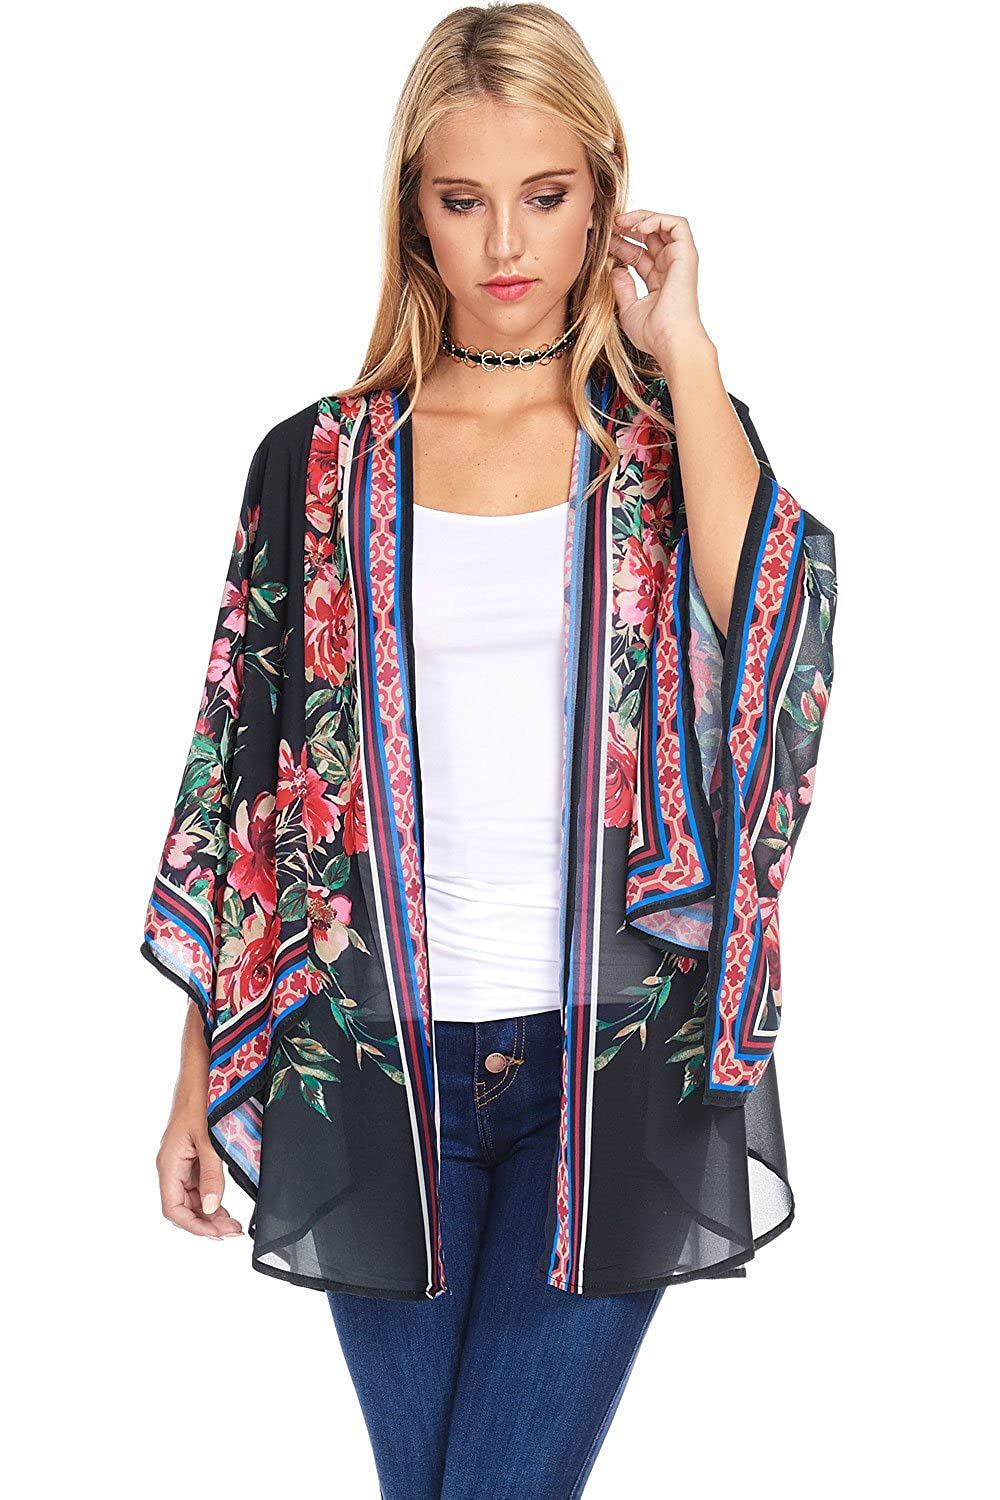 Flying Tomato Pink Ice Women's Light Chiffon Kimono Cardigan W Boho Prints by Flying Tomato